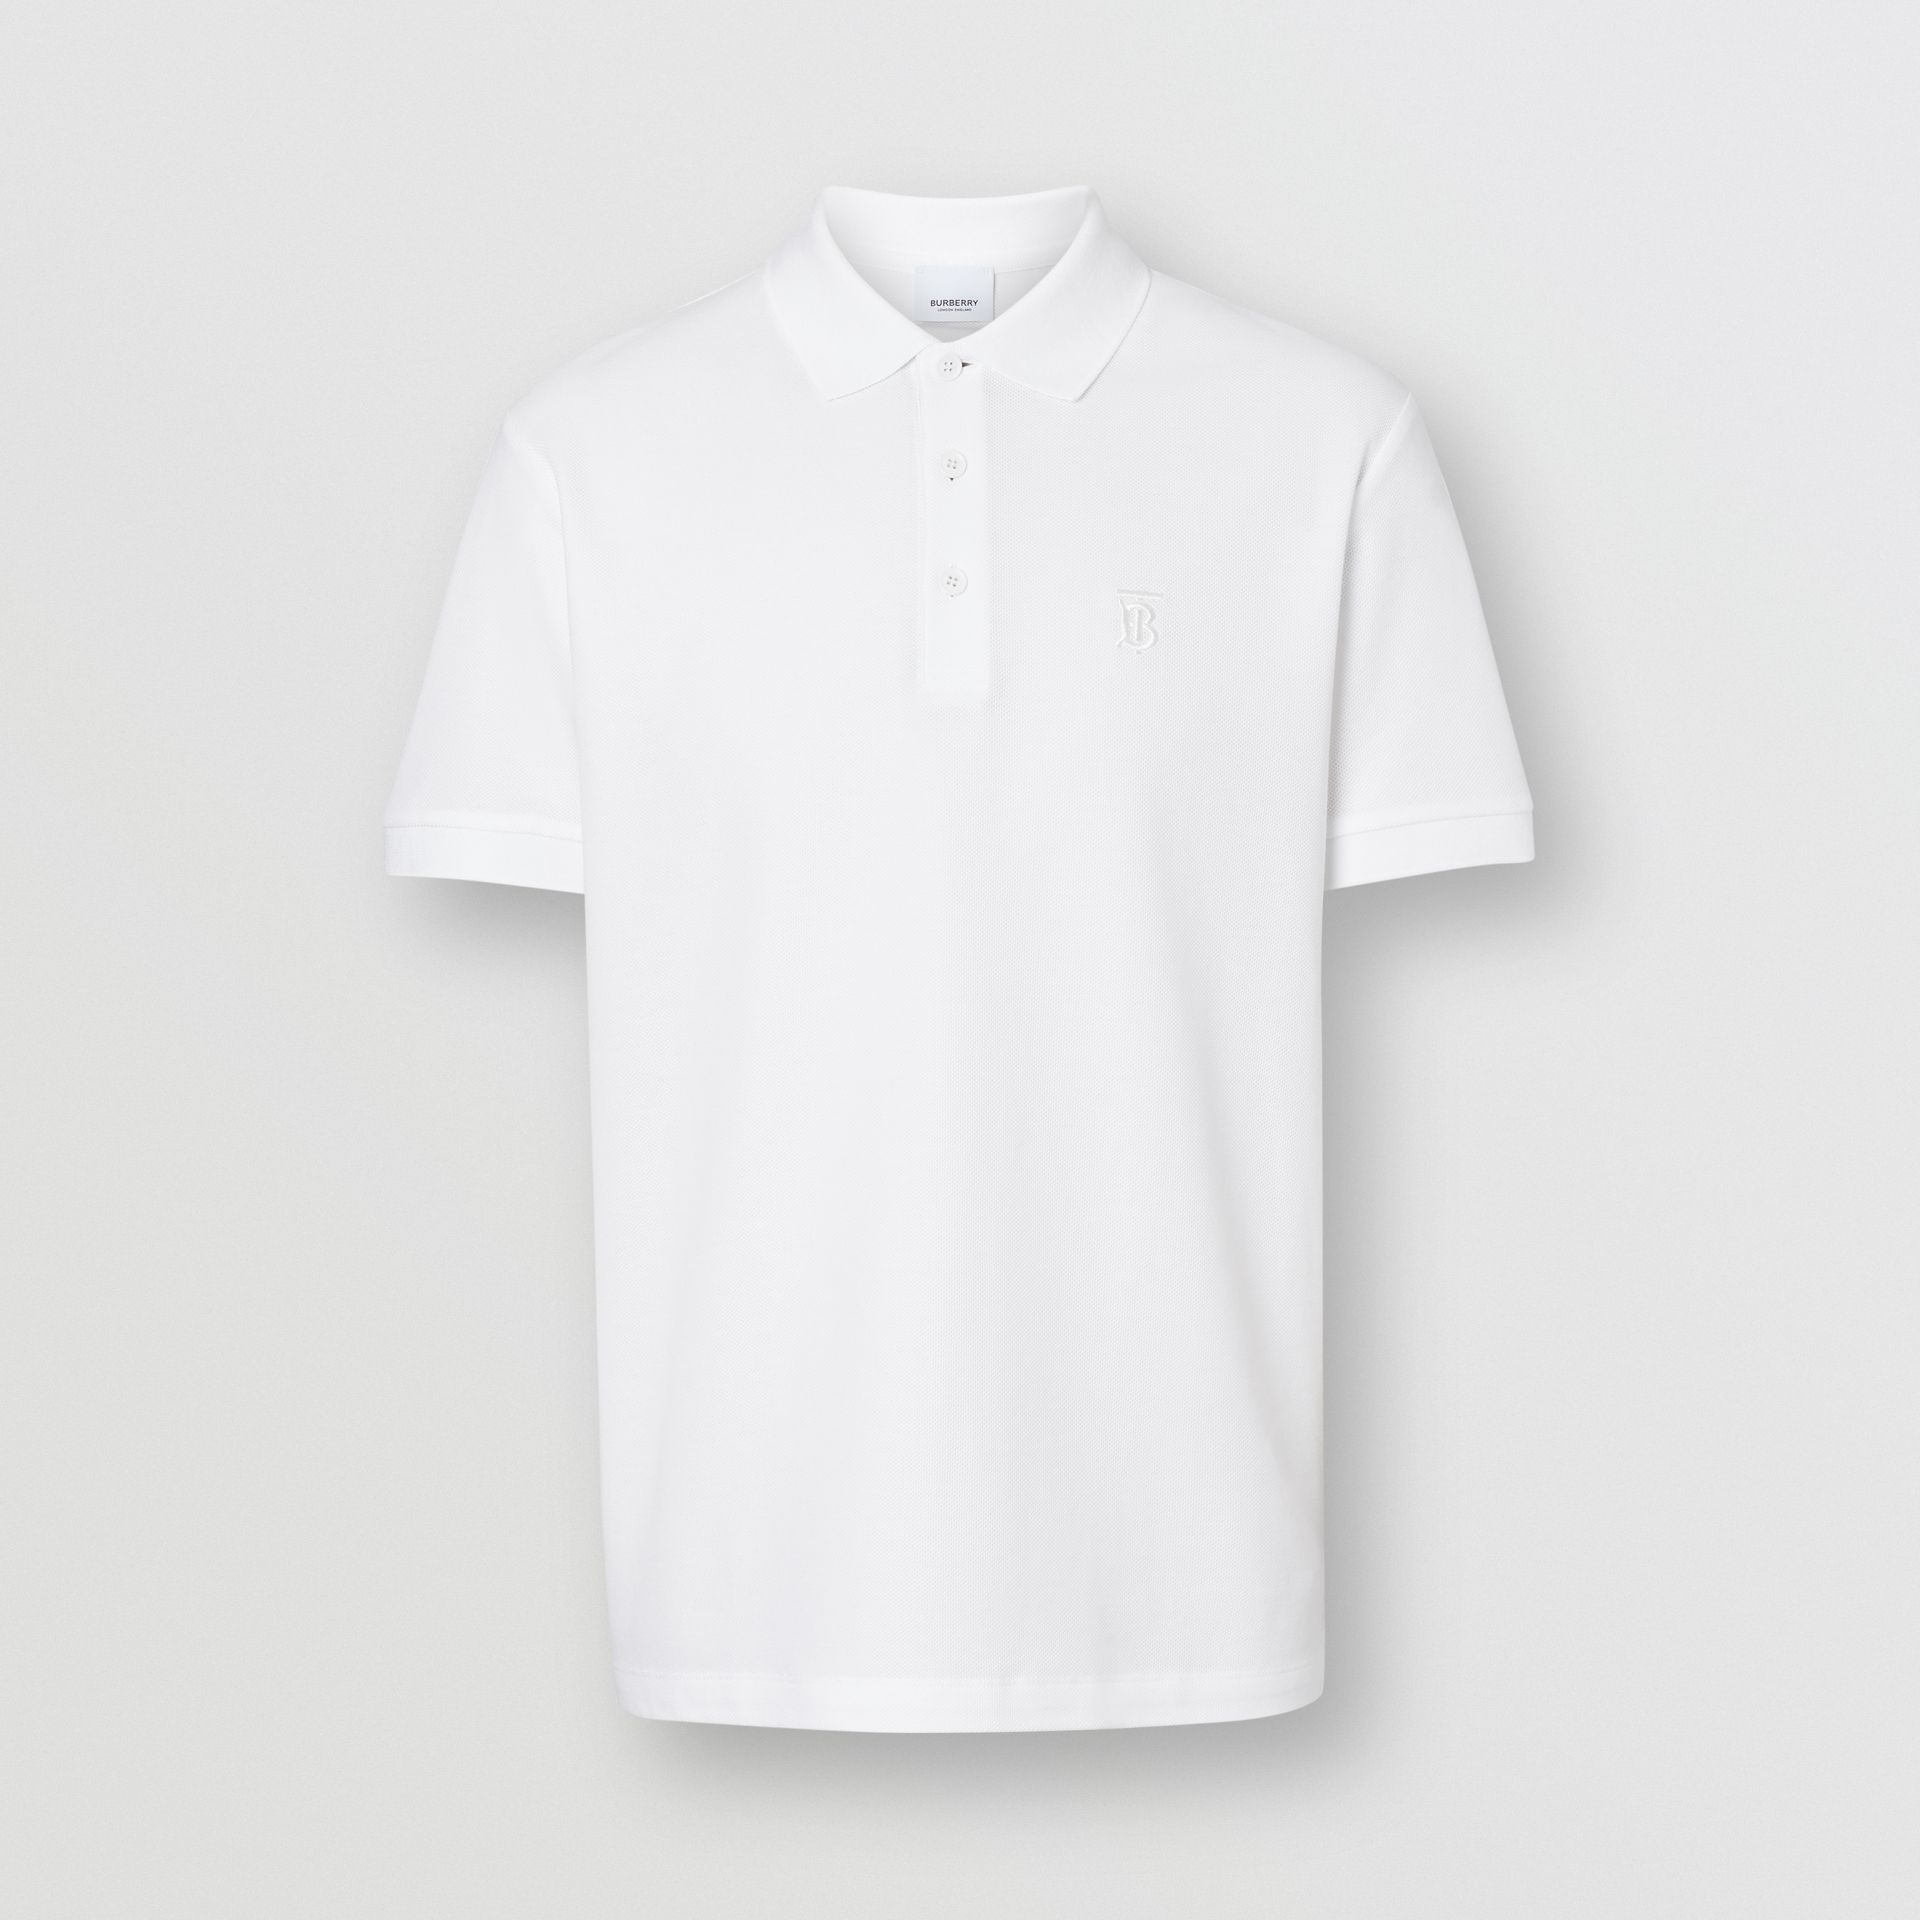 Monogram Motif Cotton Piqué Polo Shirt in White - Men | Burberry - gallery image 3